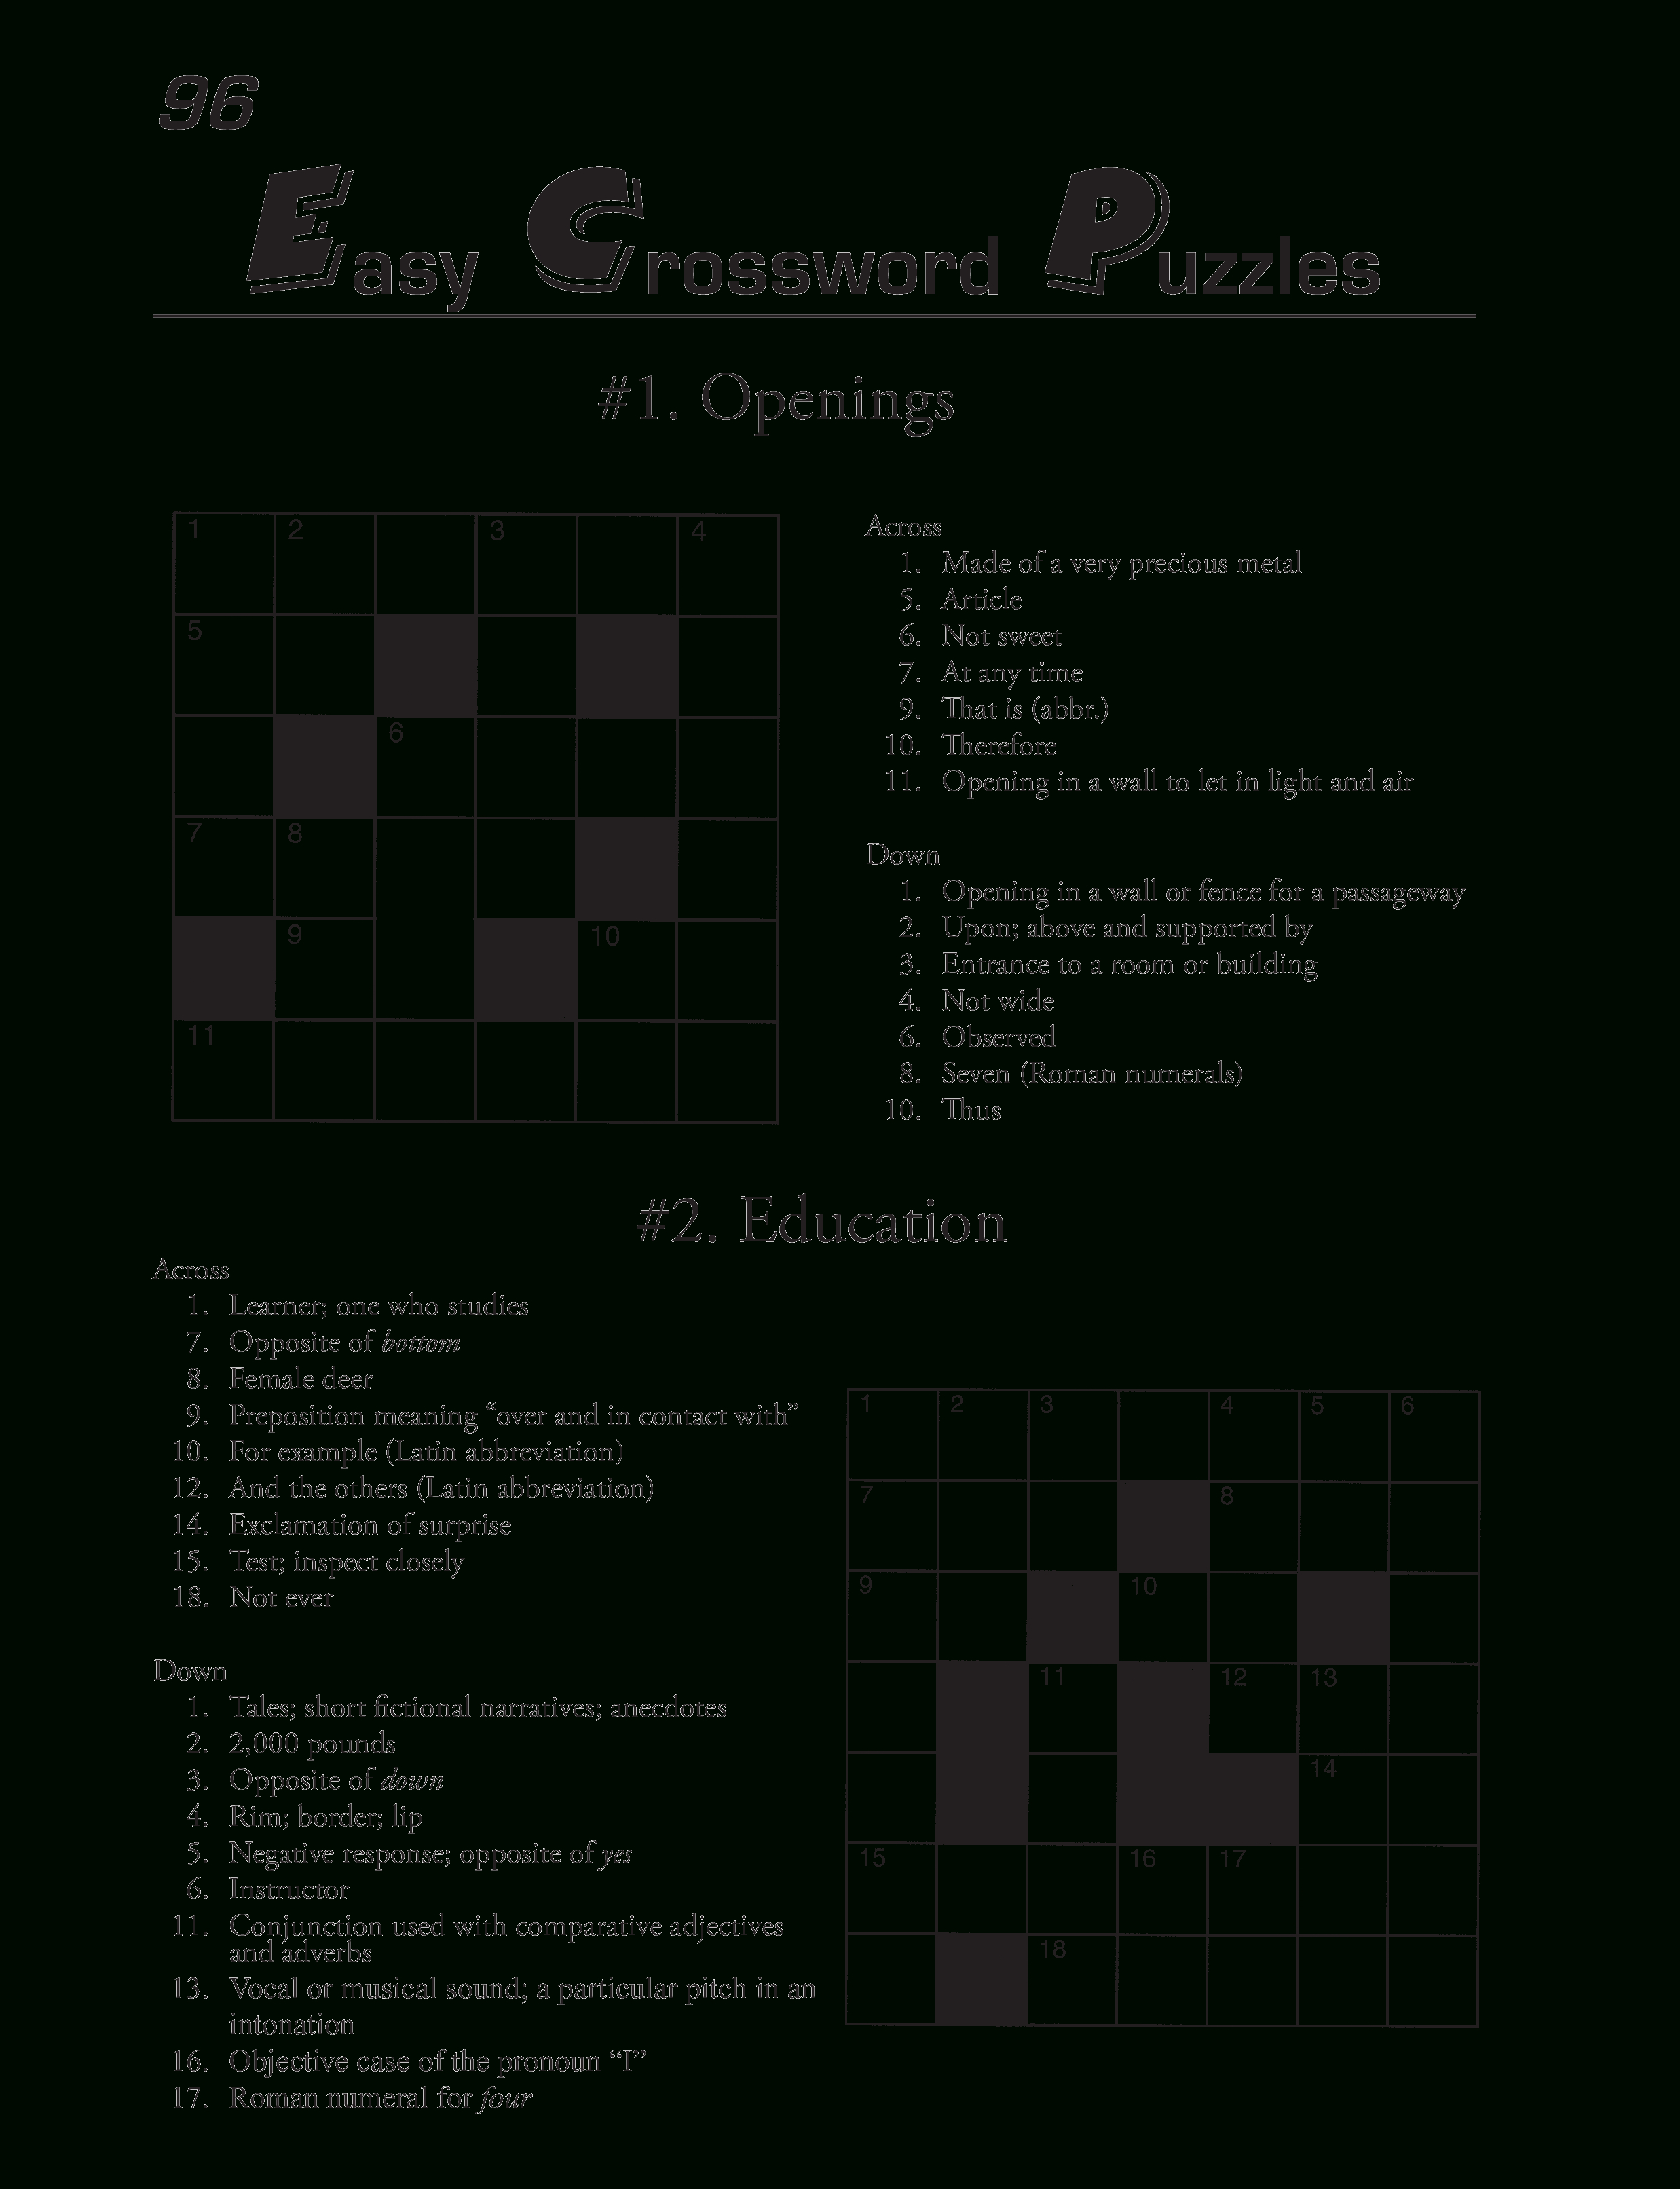 Printable Crossword Puzzles Template | Templates At - Download Printable Crossword Puzzle